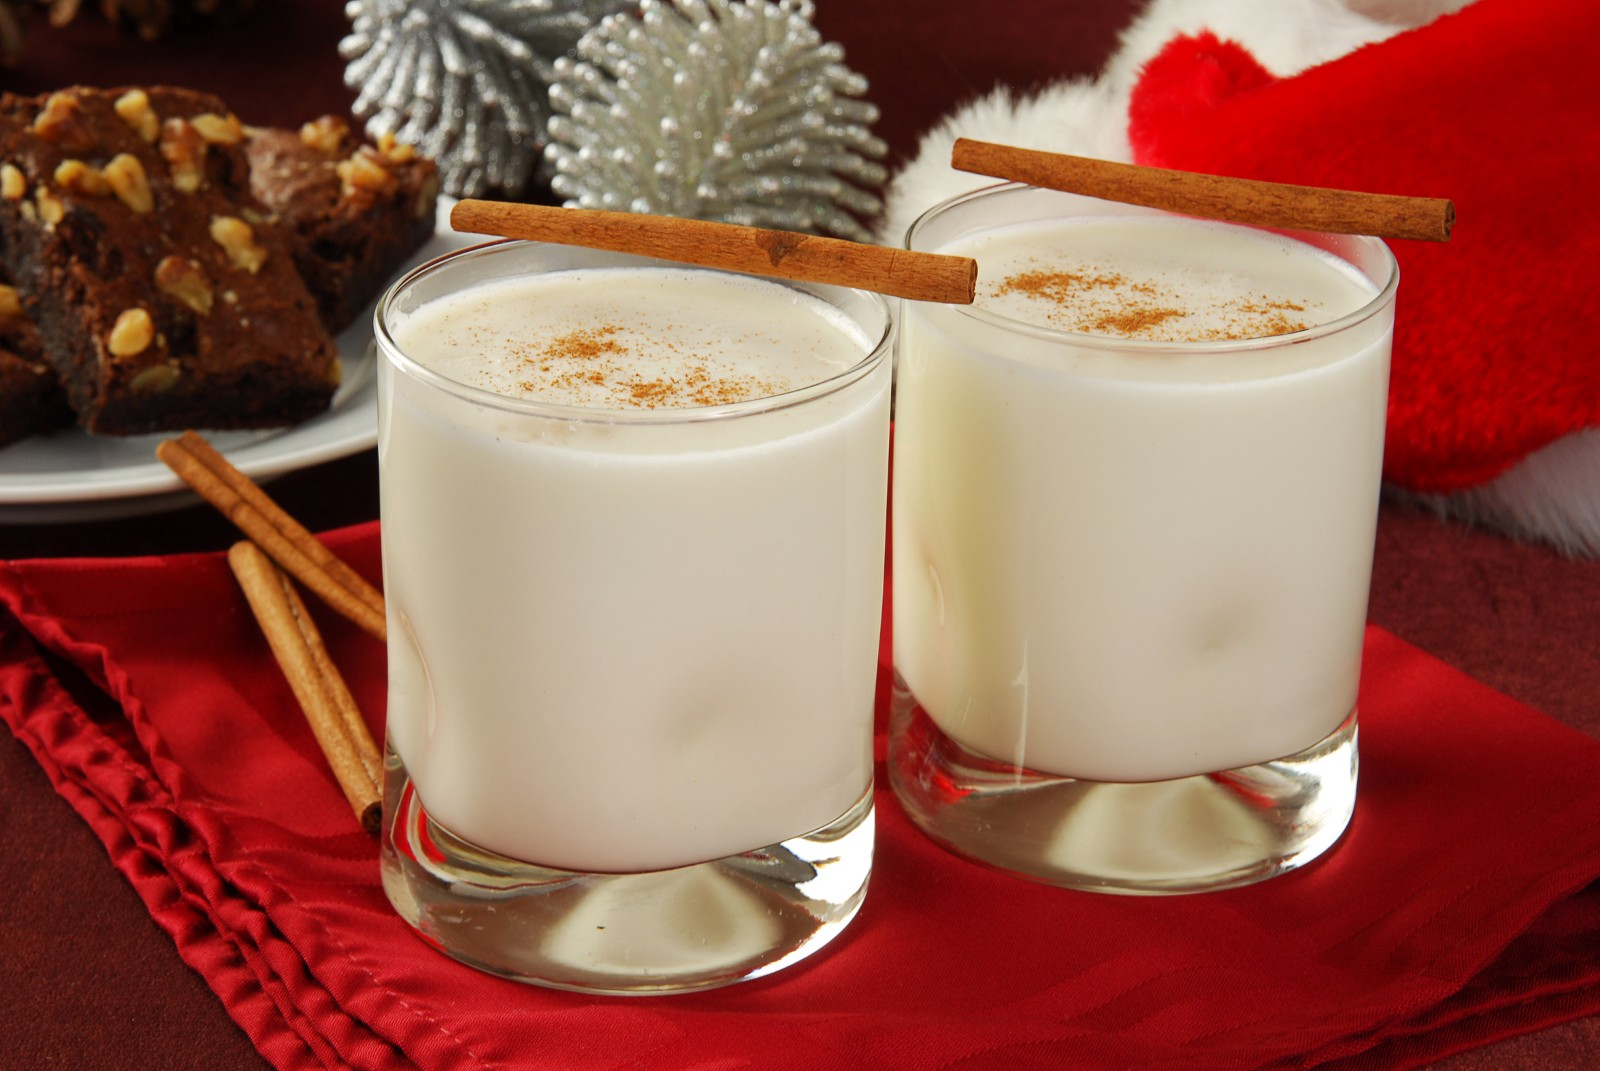 Toffee Nut Latte & Eggnog |My favorite Christmas drinks in StarBacks